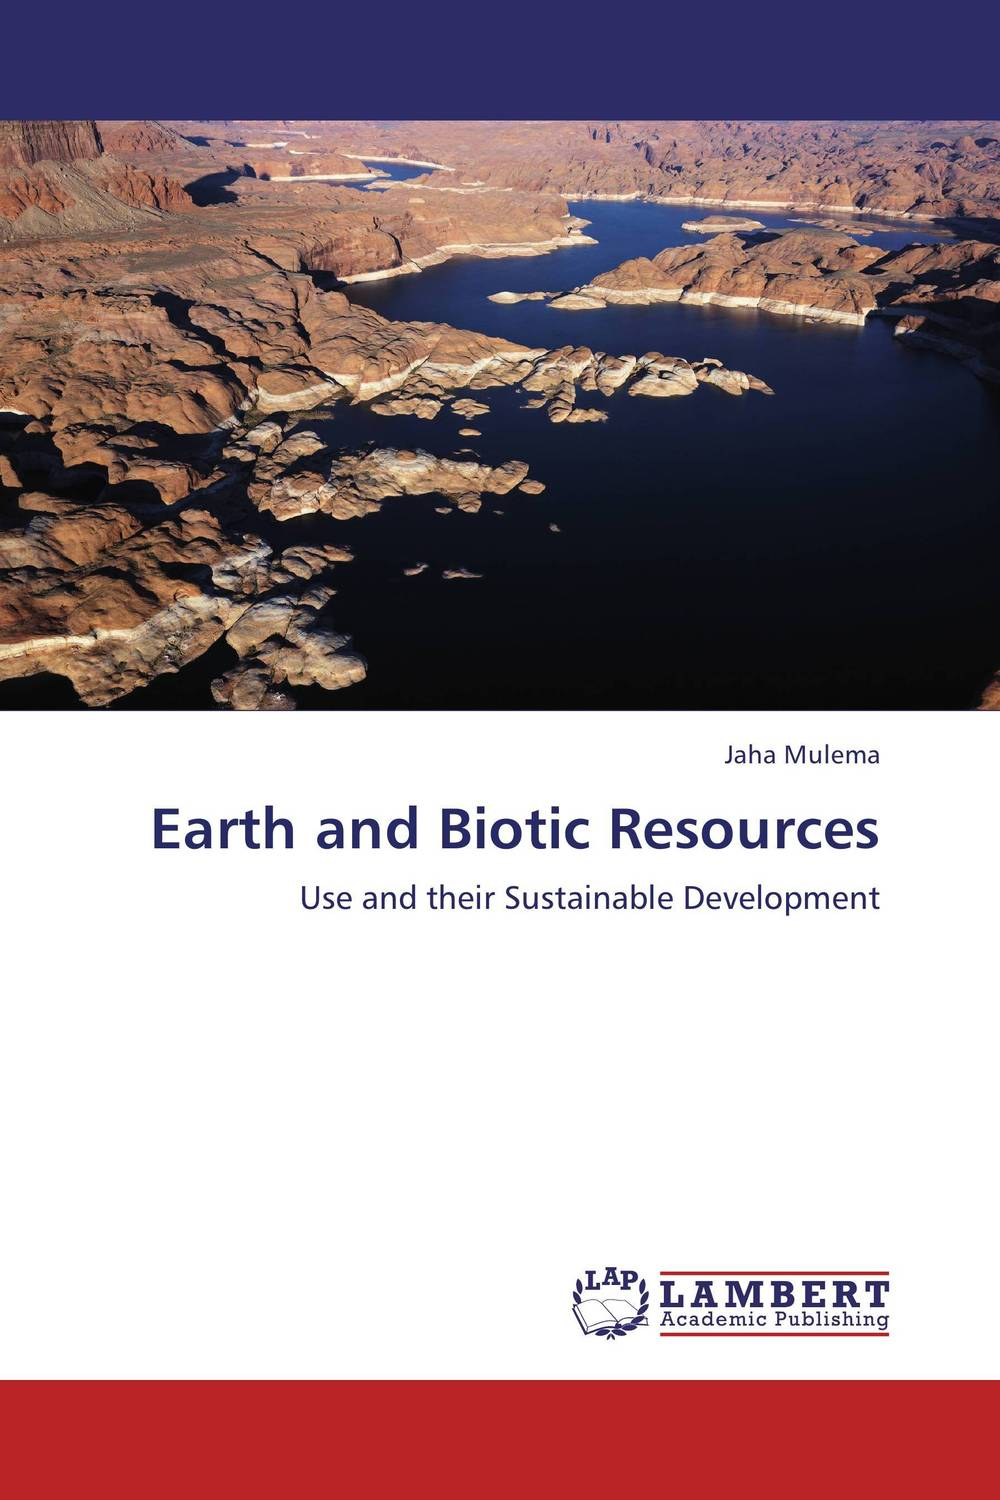 Earth and Biotic Resources earth and biotic resources